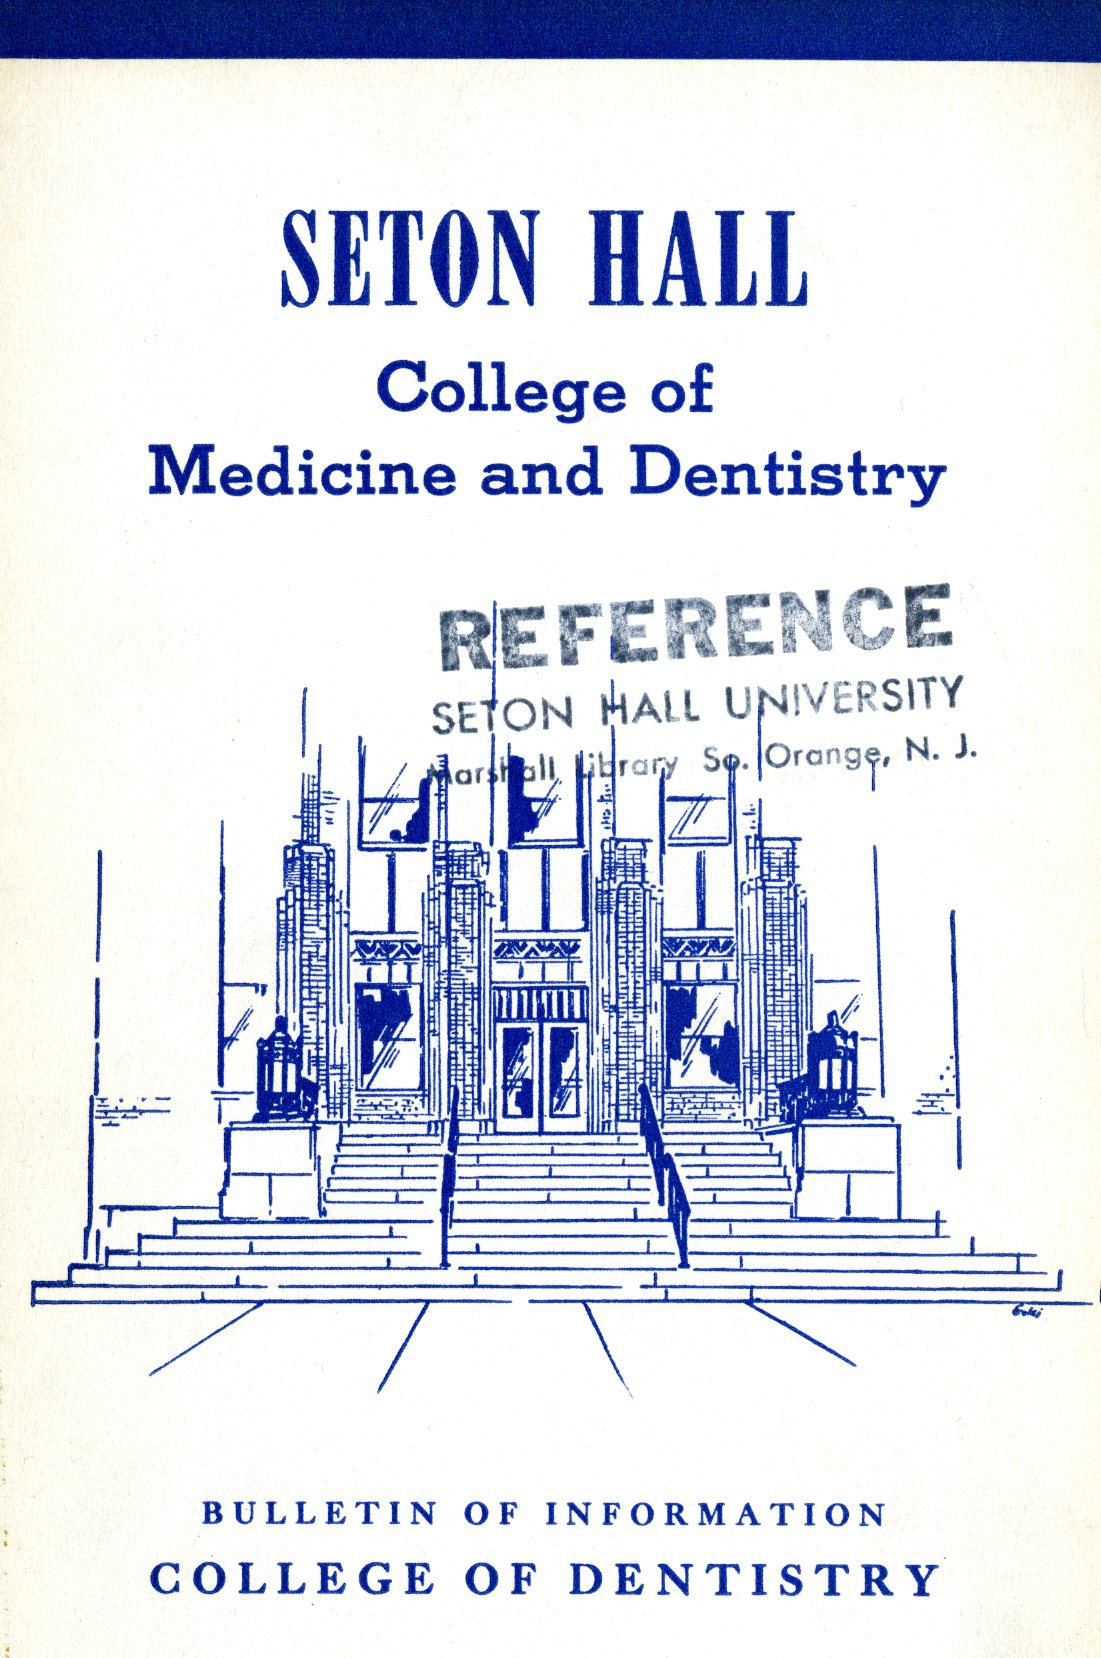 Seton Hall college of medicine and dentistry